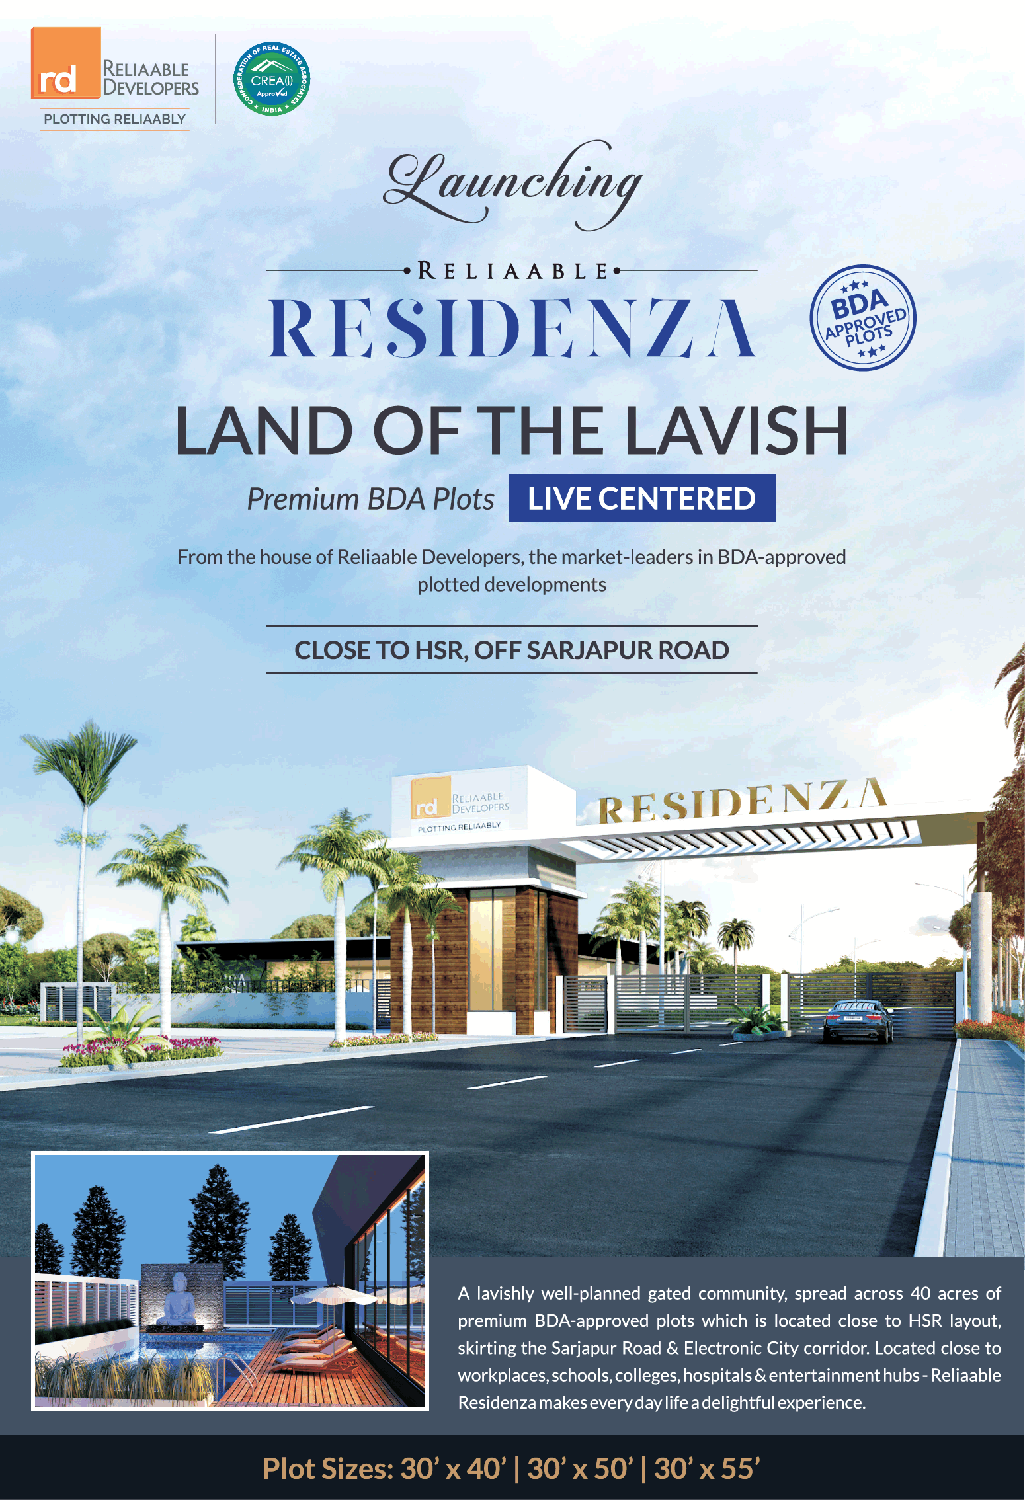 625995166f51 Reliable Developers Residenza Bda Approved Plots Ad in Times of India  Bangalore